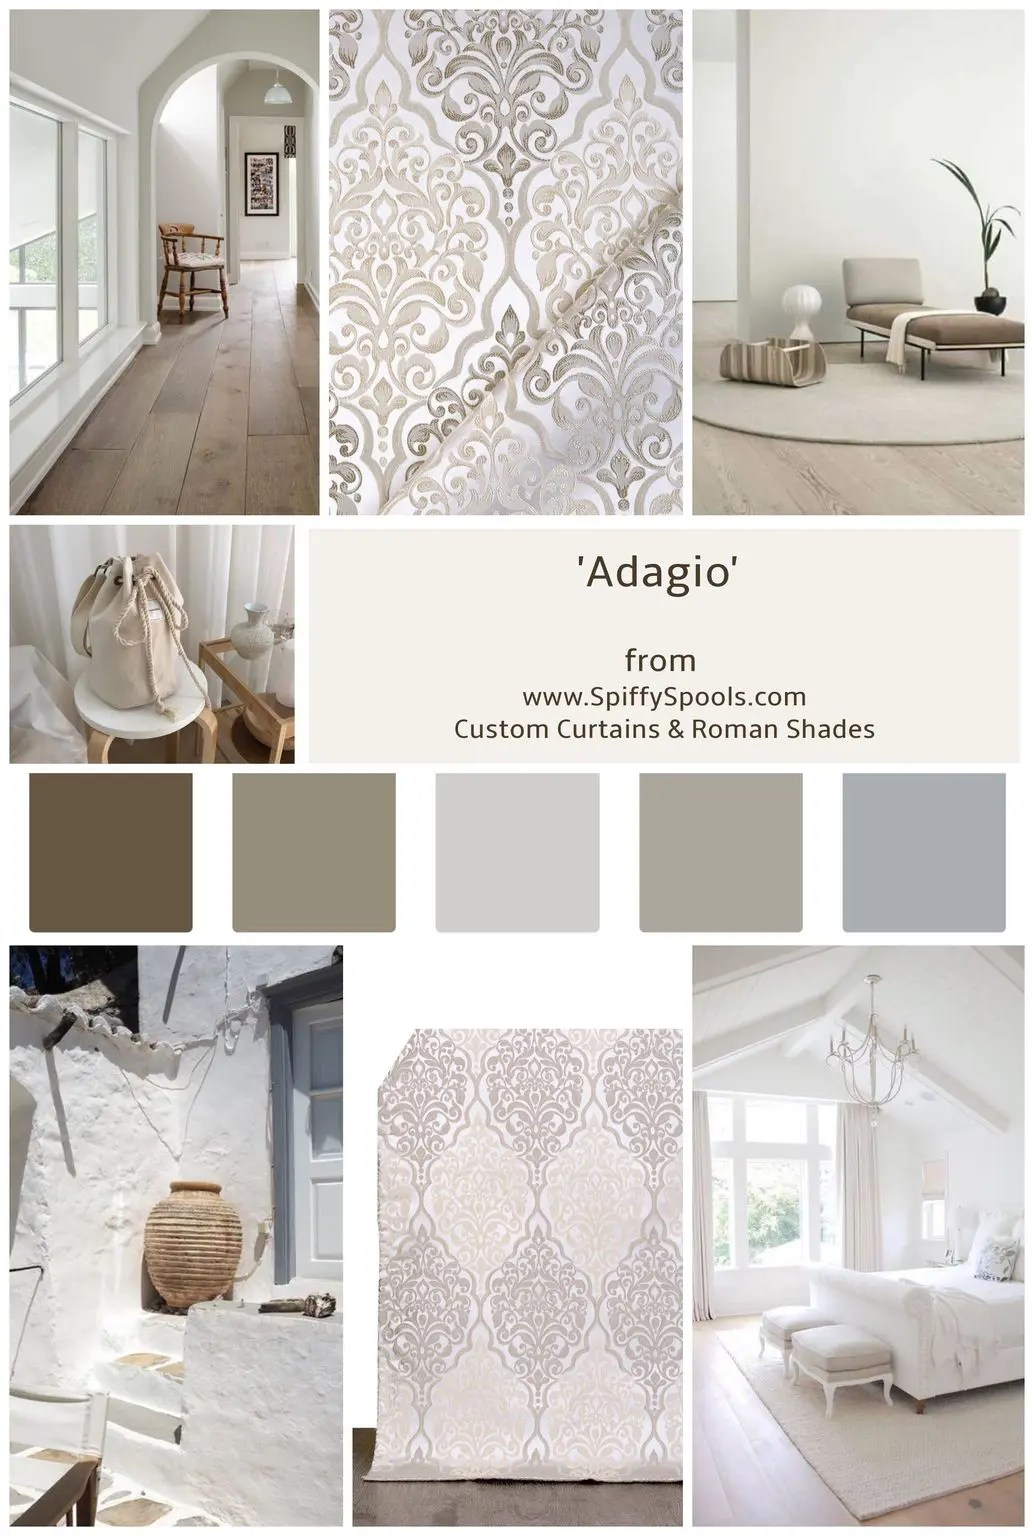 MONDAY MOOD: INSPIRED BY 'ADAGIO'